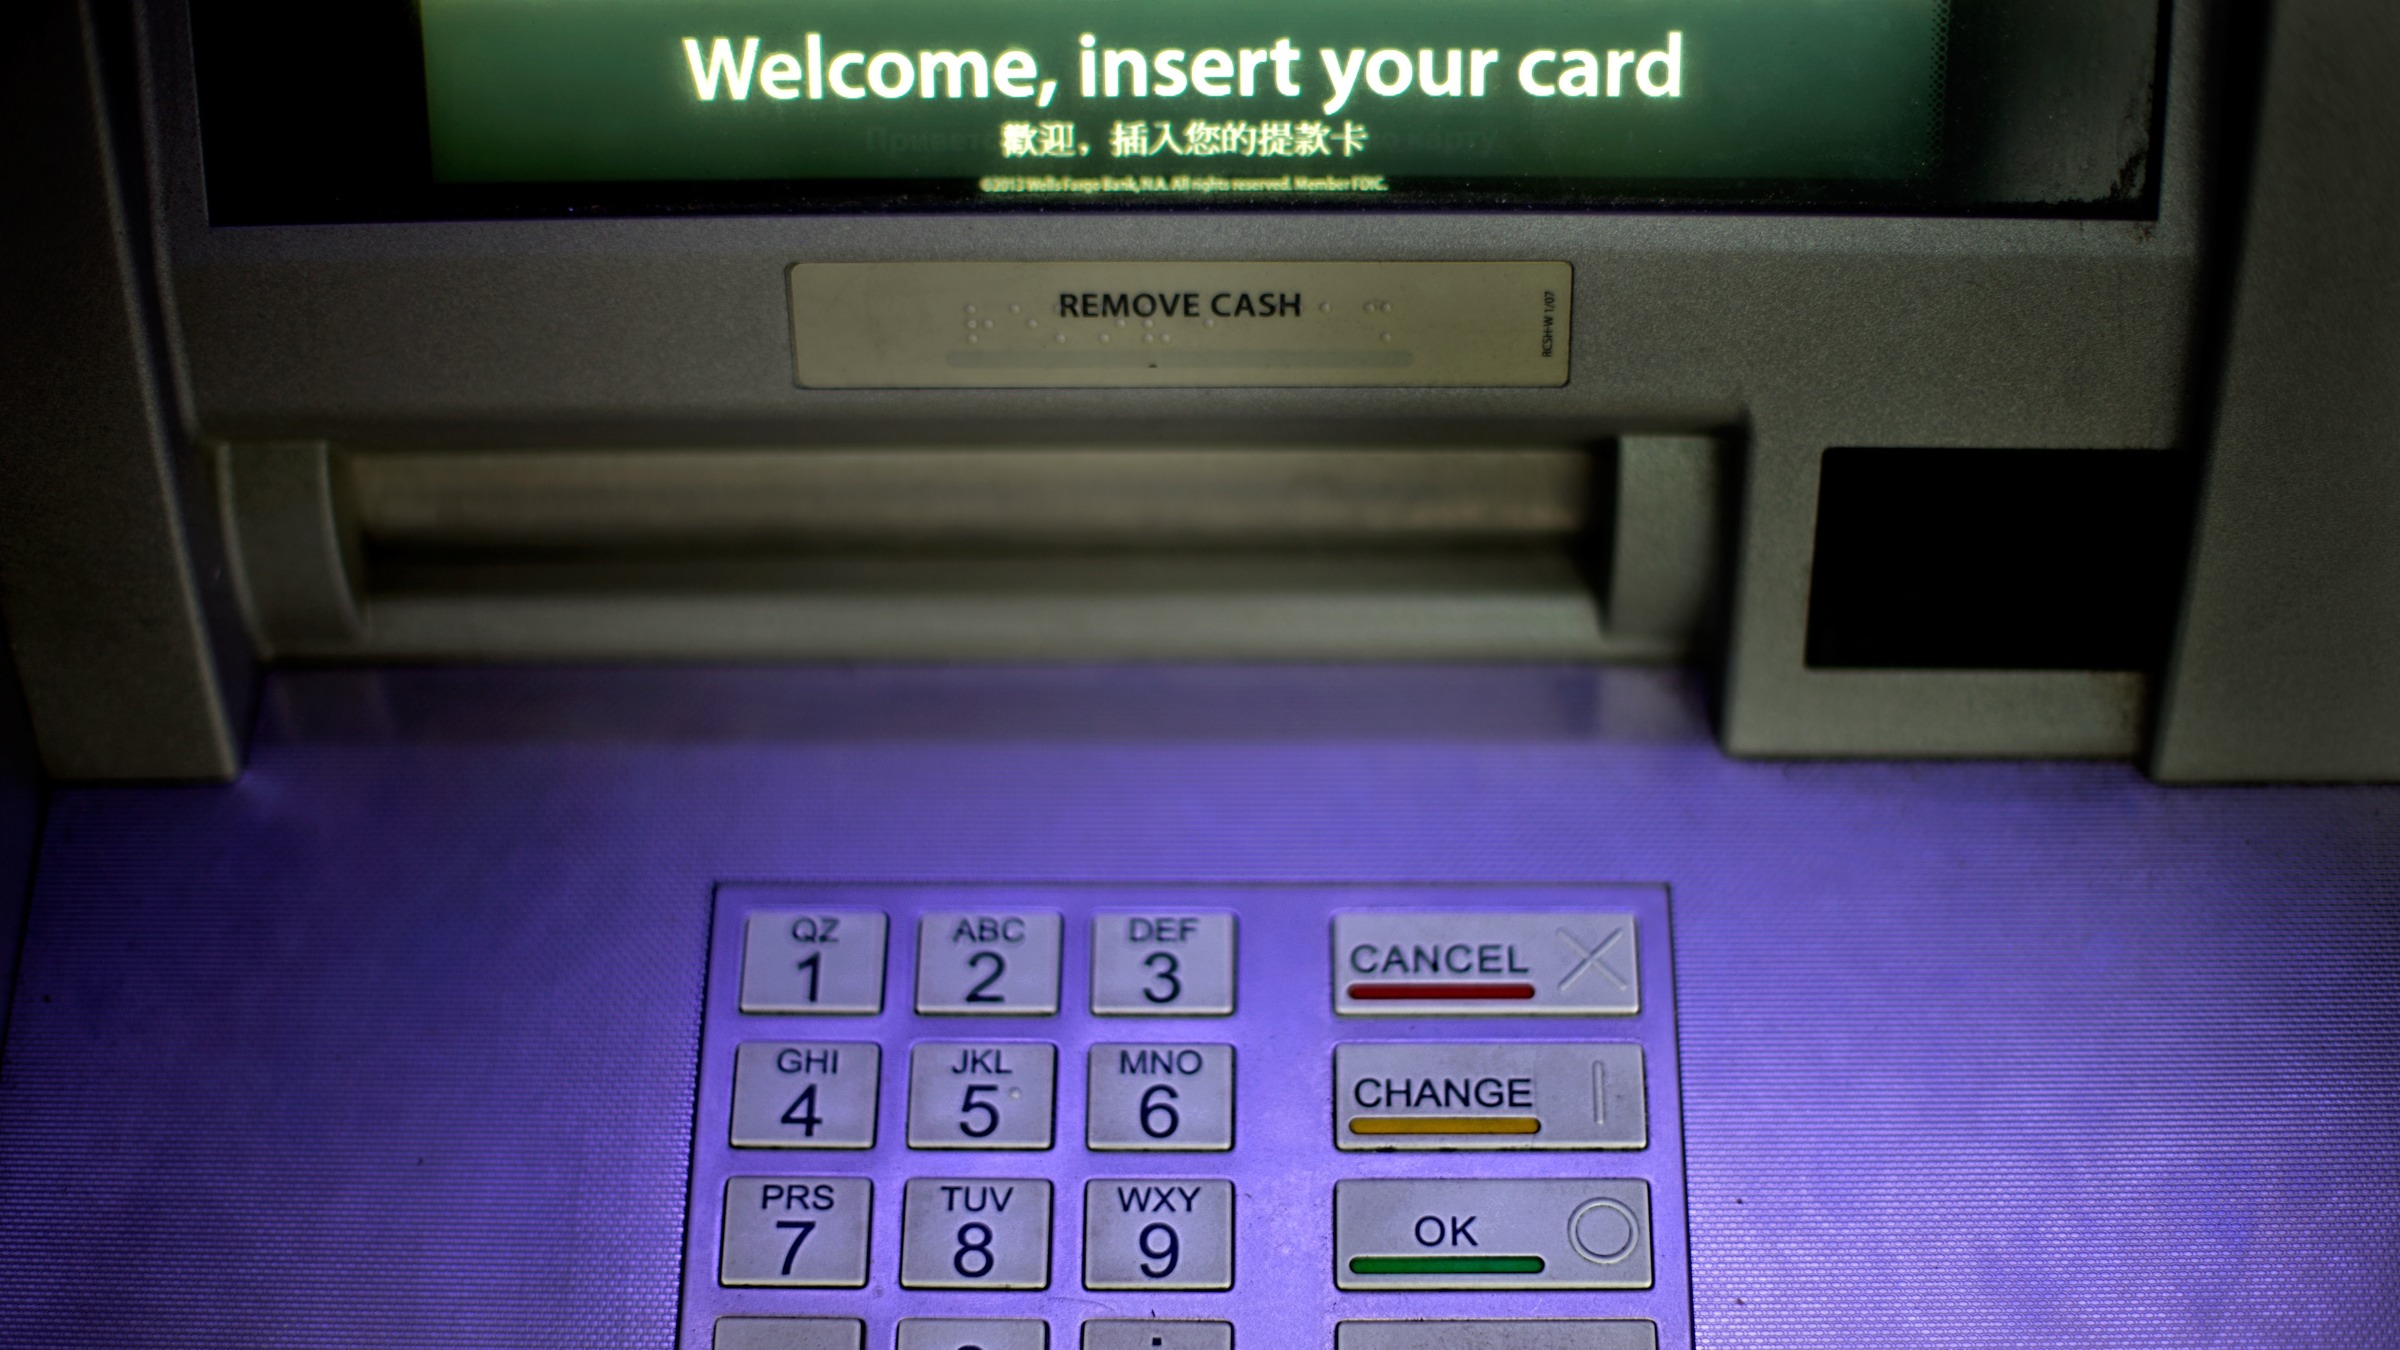 """An ATM is displayed at a Wells Fargo bank, Tuesday, July 16, 2013, in Atlanta. Banks large and small are girding for an elaborate drill this week that will test how they'd fare if hackers unleashed a powerful and coordinated attack against them. The exercise is being called """"Quantum Dawn 2,"""" and if the name sounds like a video game, it's also meant to convey the seriousness of a big threat. (AP Photo/David Goldman)"""